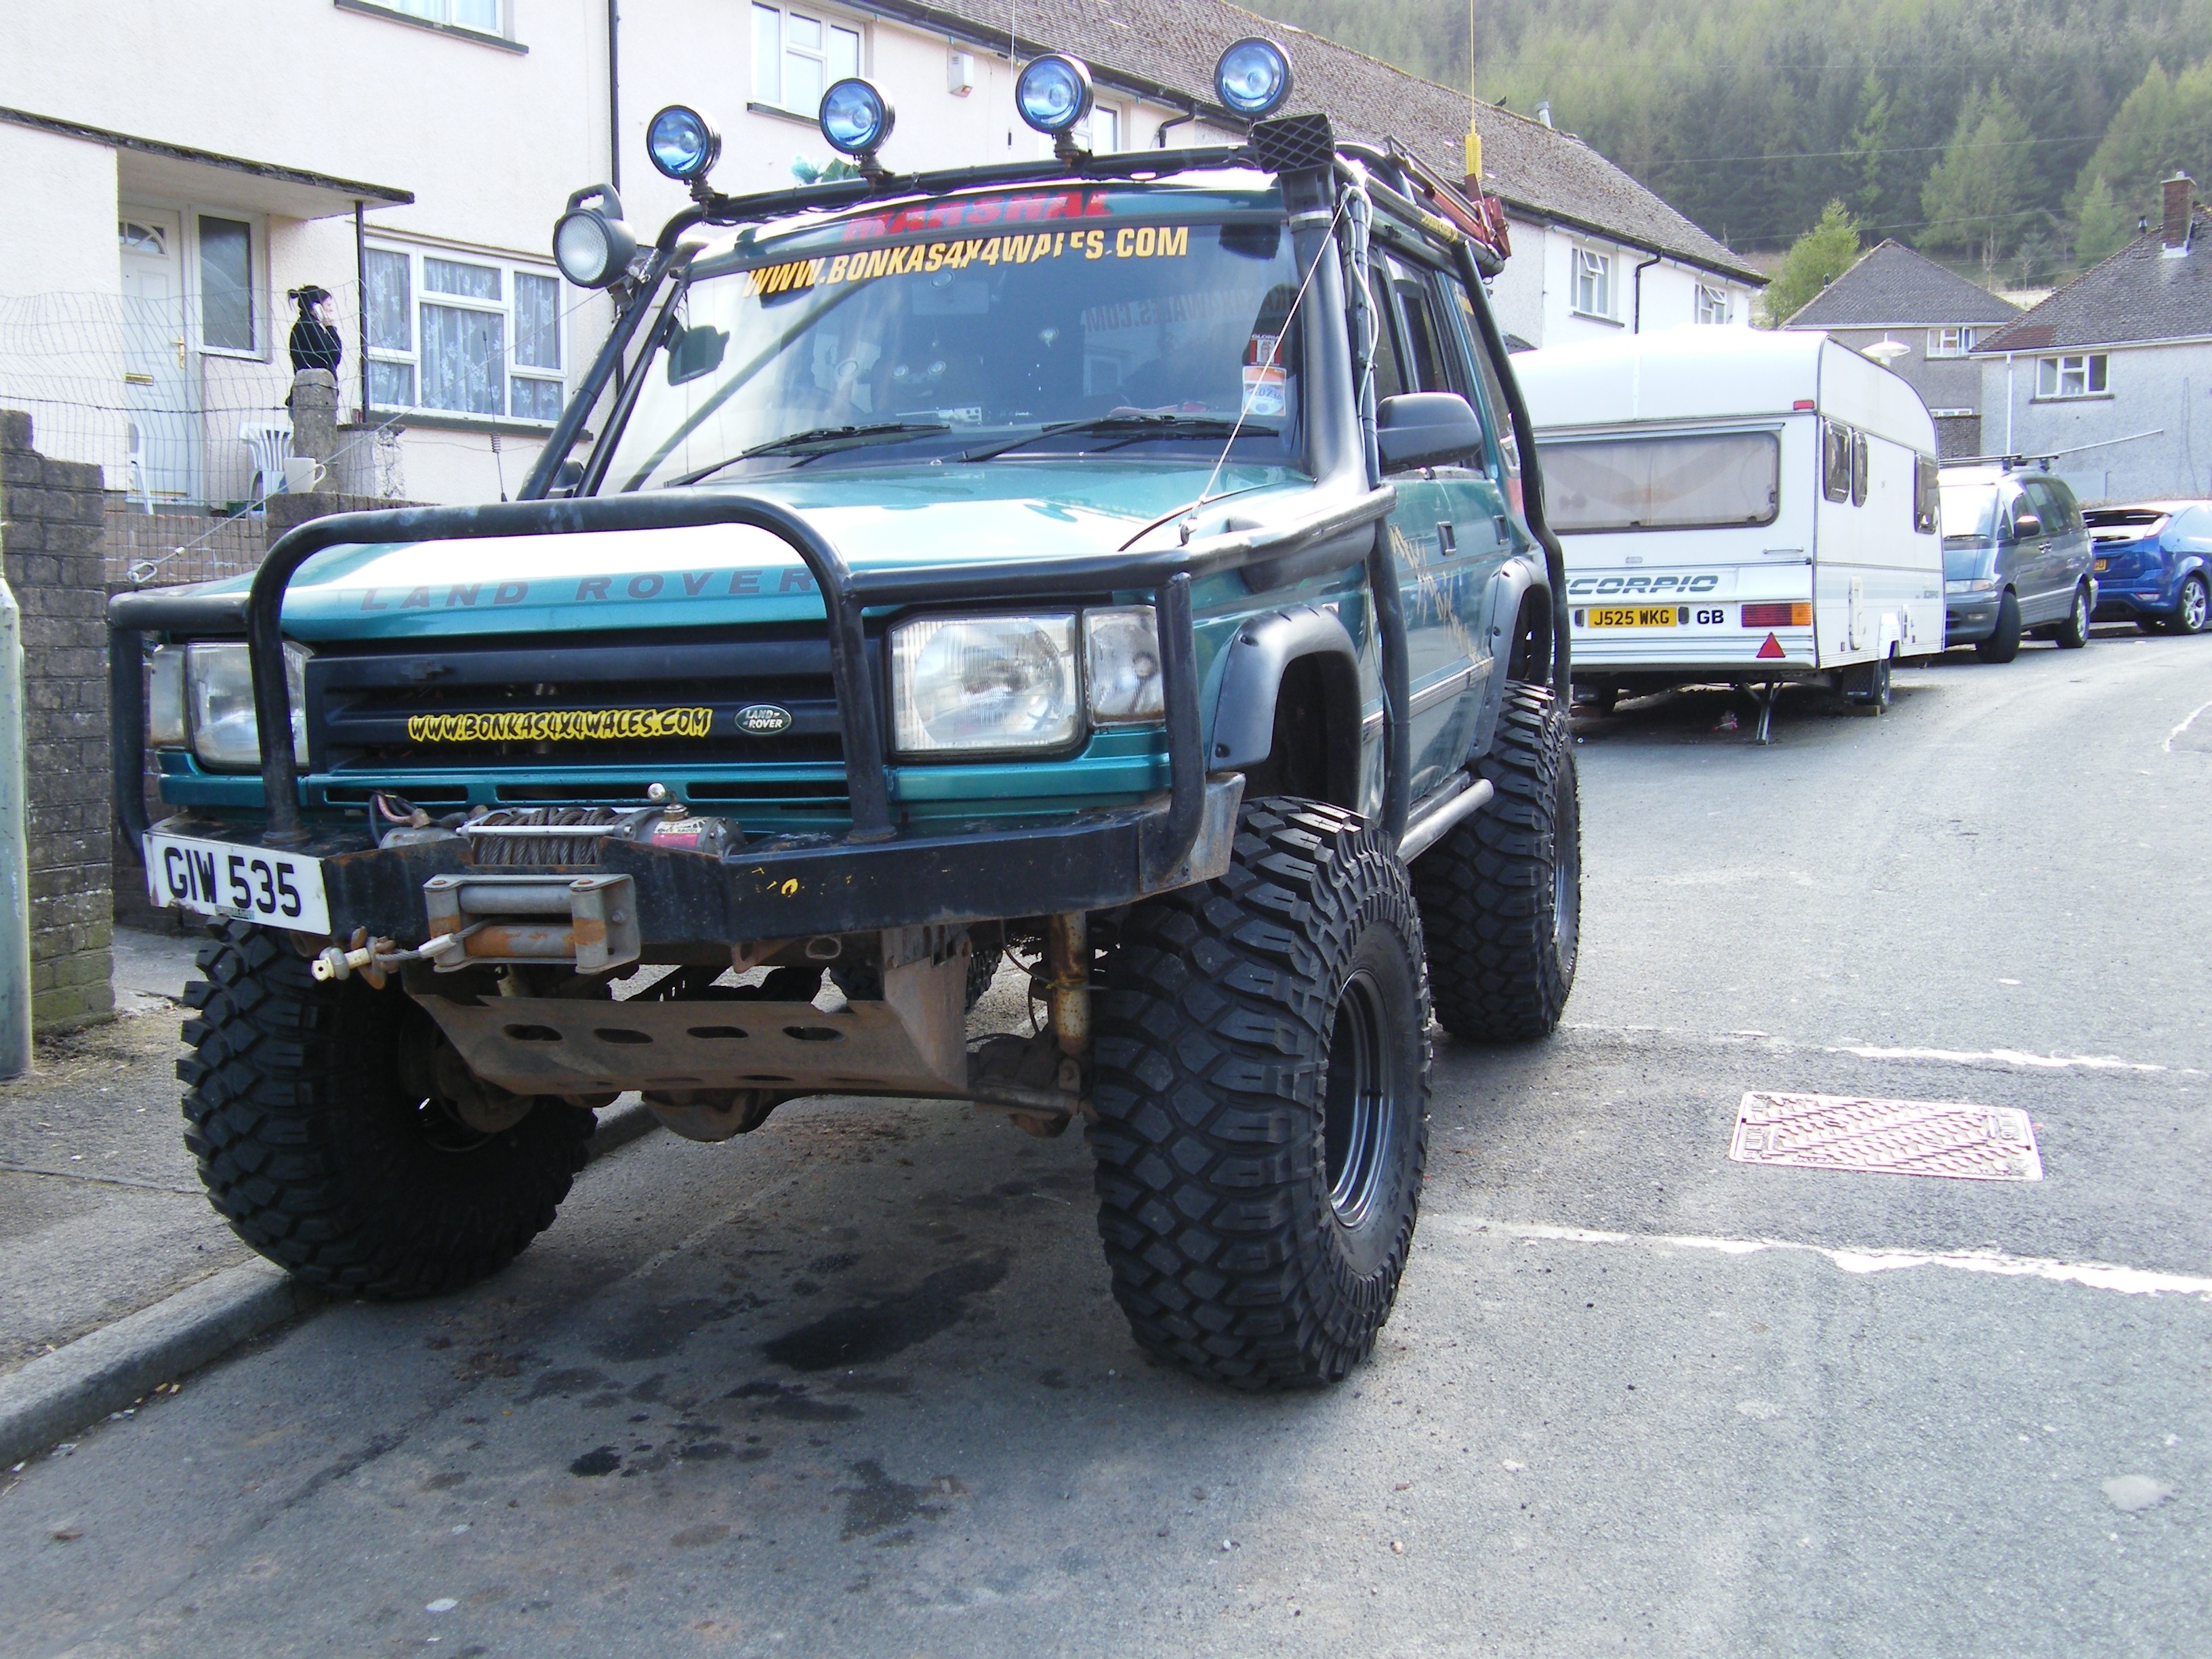 thread then discovery di mail in four land threads to or front yedor at me pick landrover classic forum winch lights best max i always range e fits fullerton and bump tabs for rrc bumper rover up